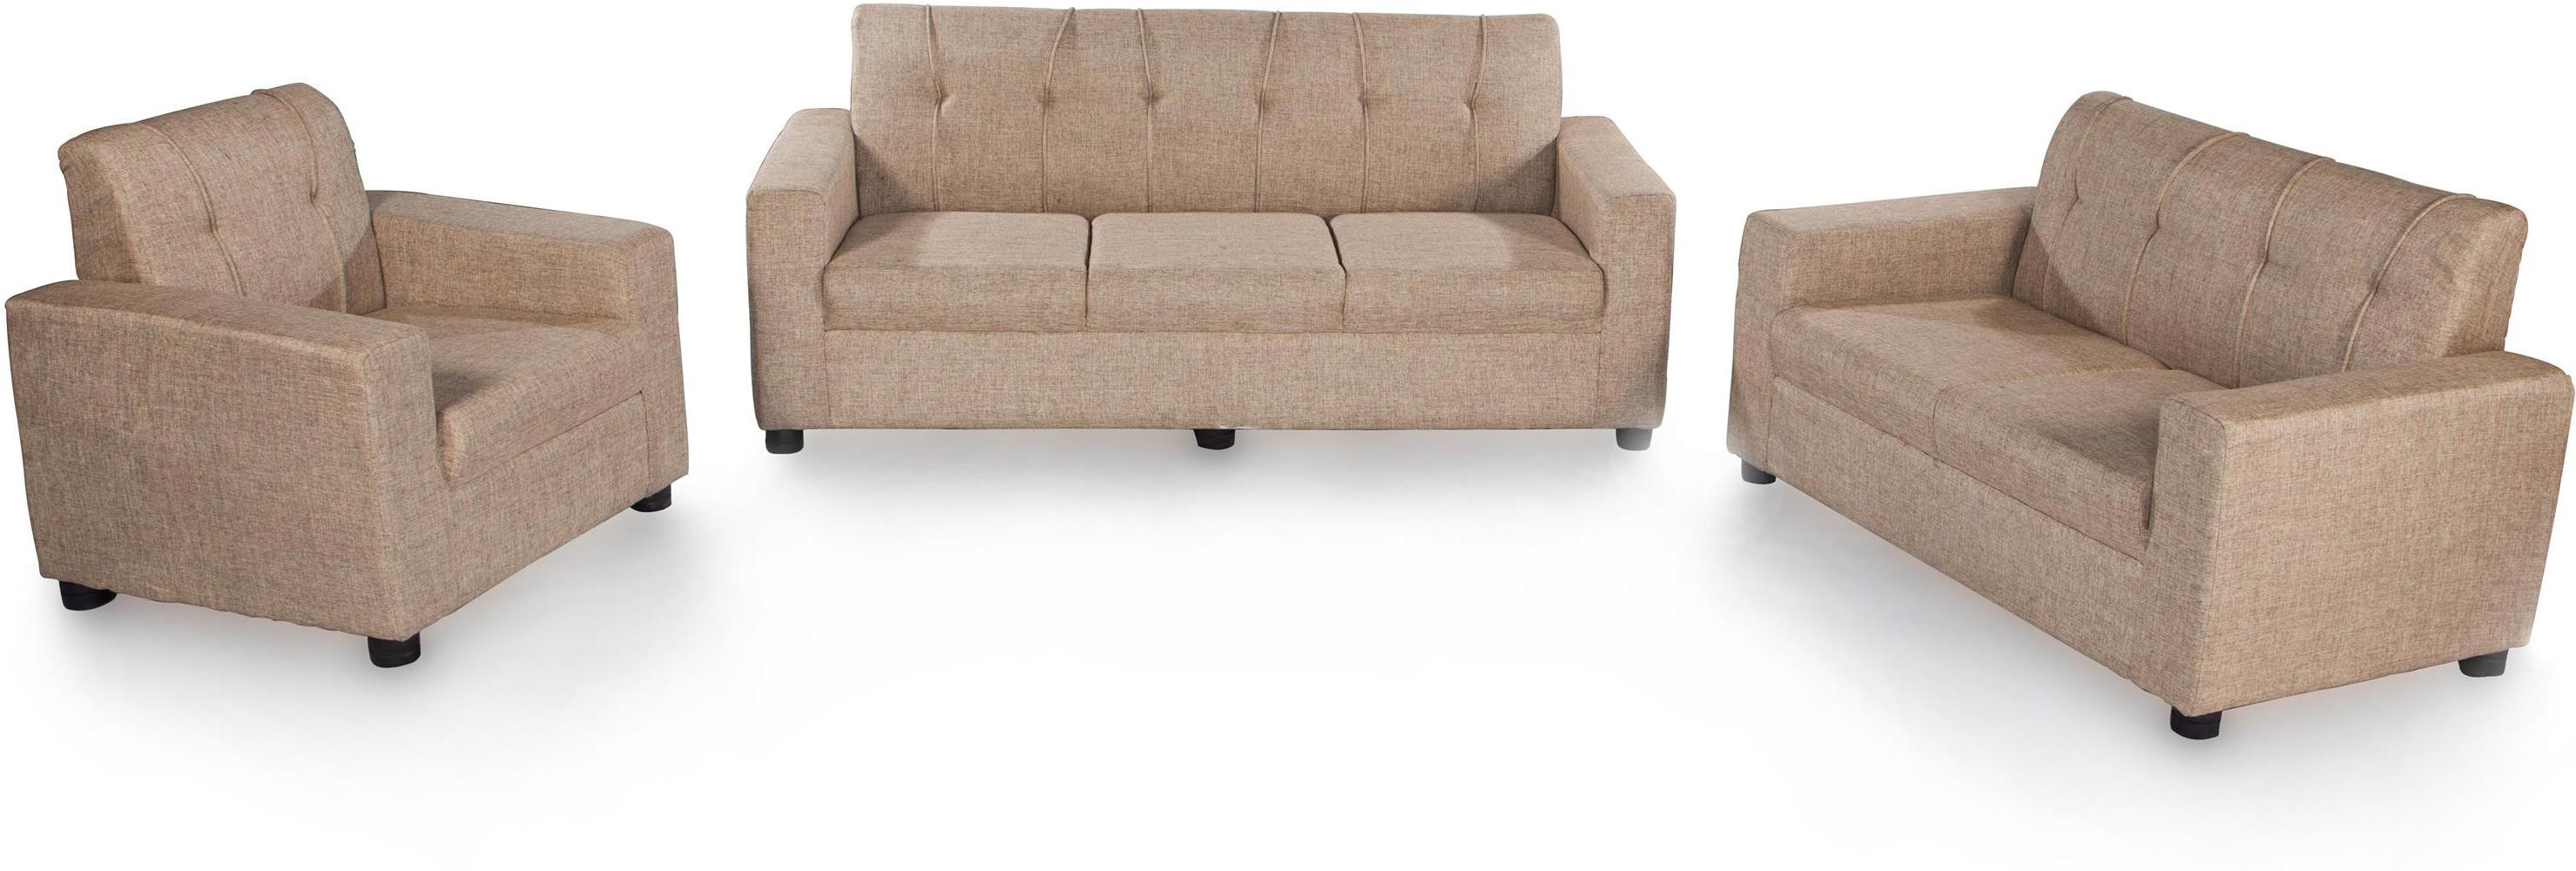 View Furnicity Fabric 3 + 2 + 2 Beige Sofa Set(Configuration - Straight) Furniture (Furnicity)